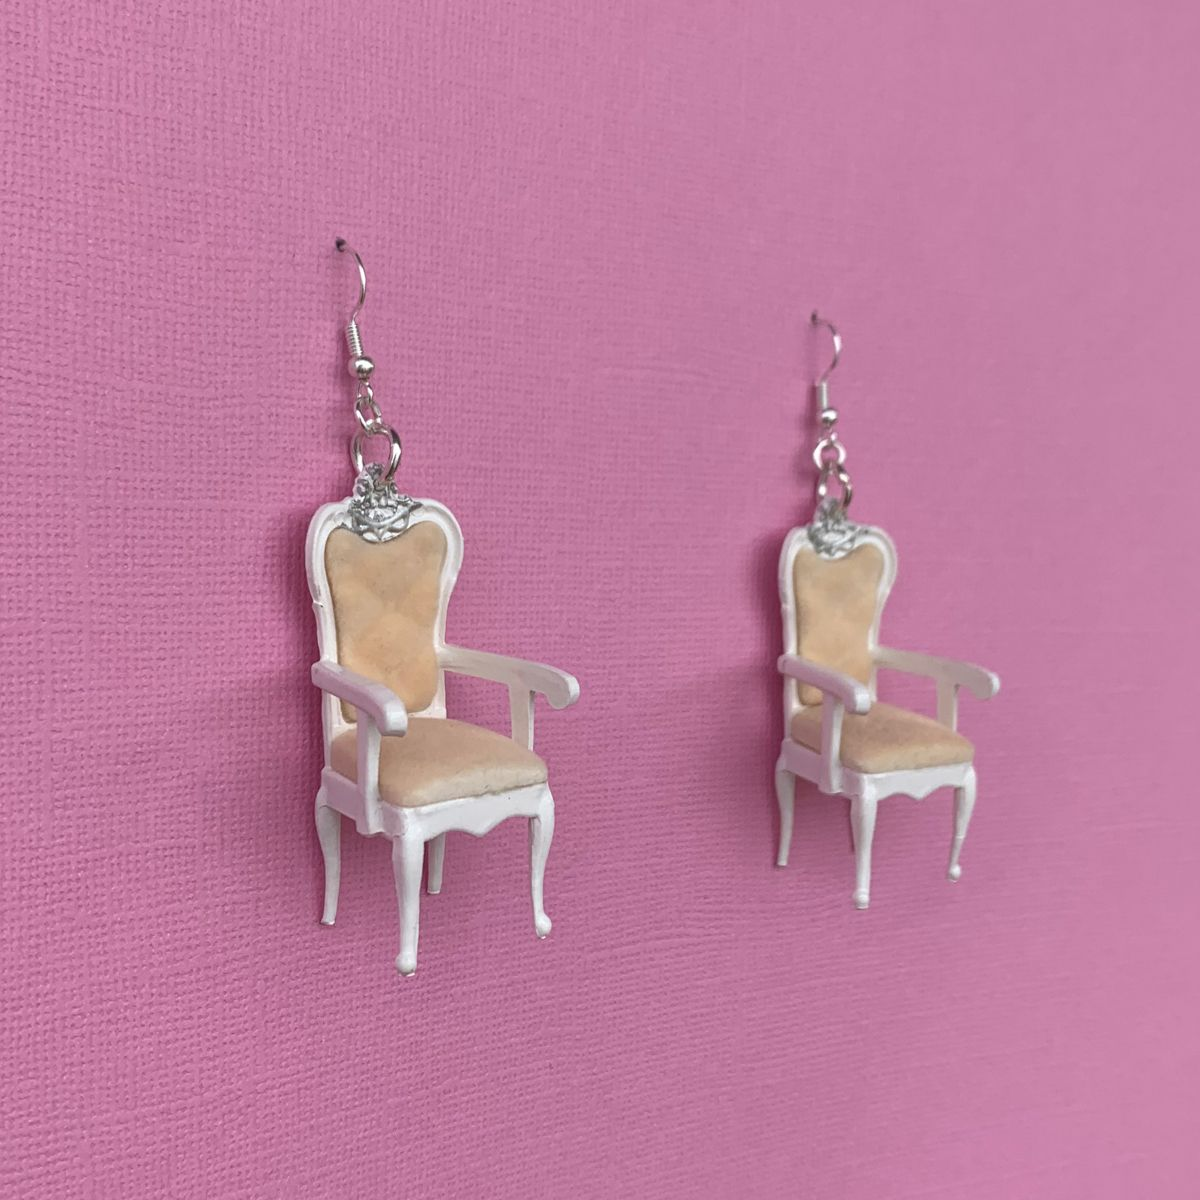 Chair Earrings In 2020 Earrings Statement Earrings Stud Earrings